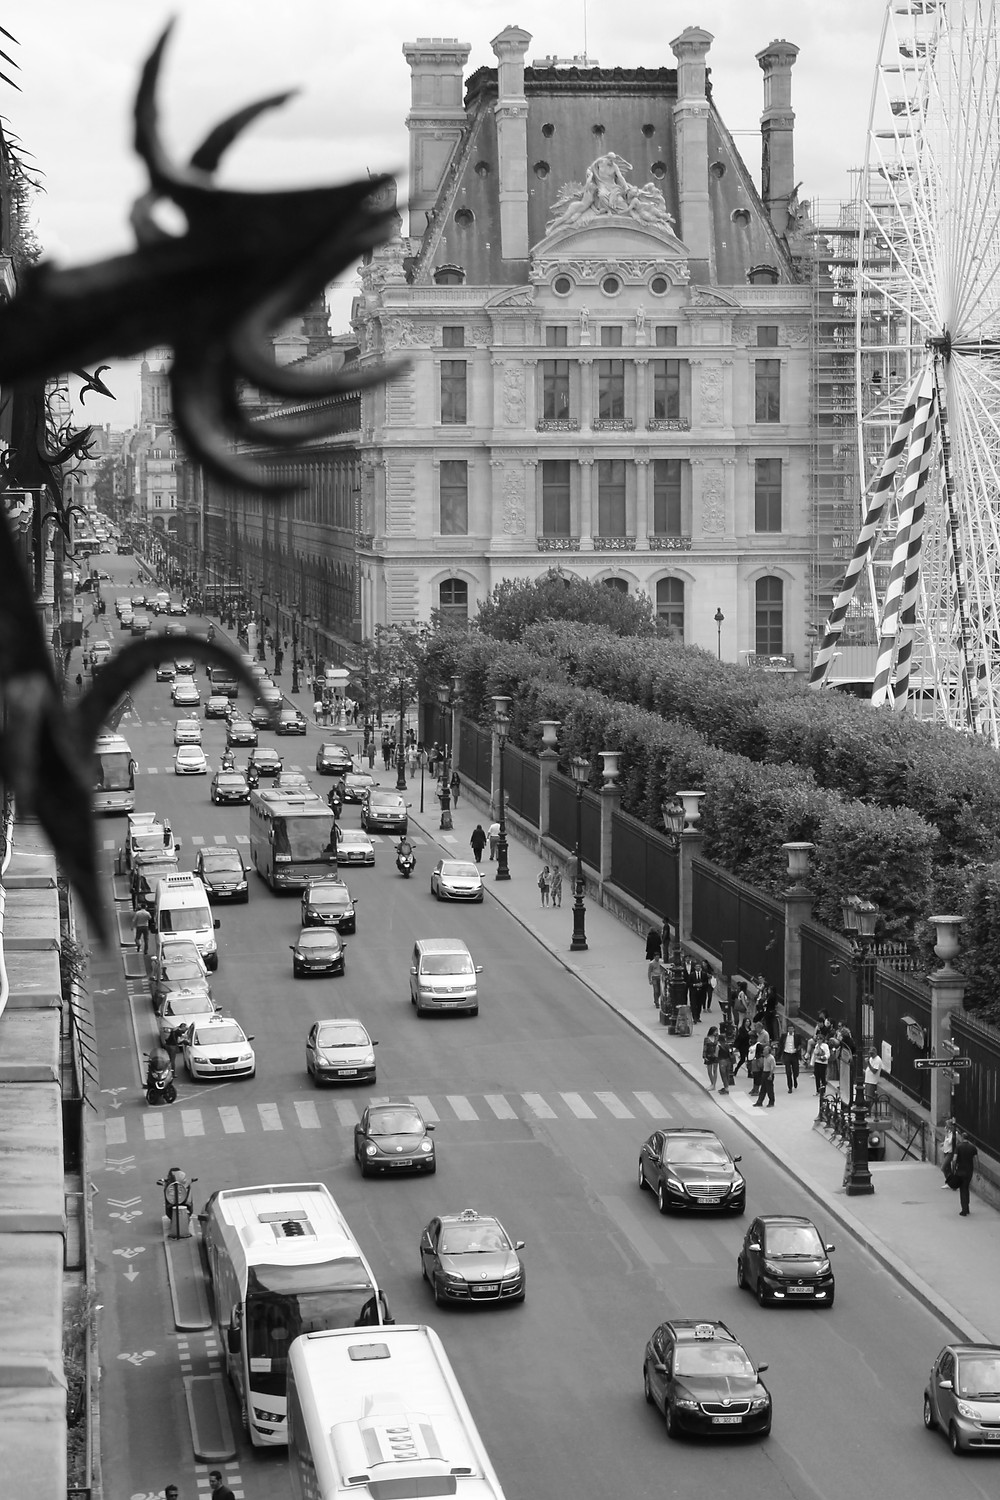 Rue de Rivoli, RKAS Photography, Paris, France 2016